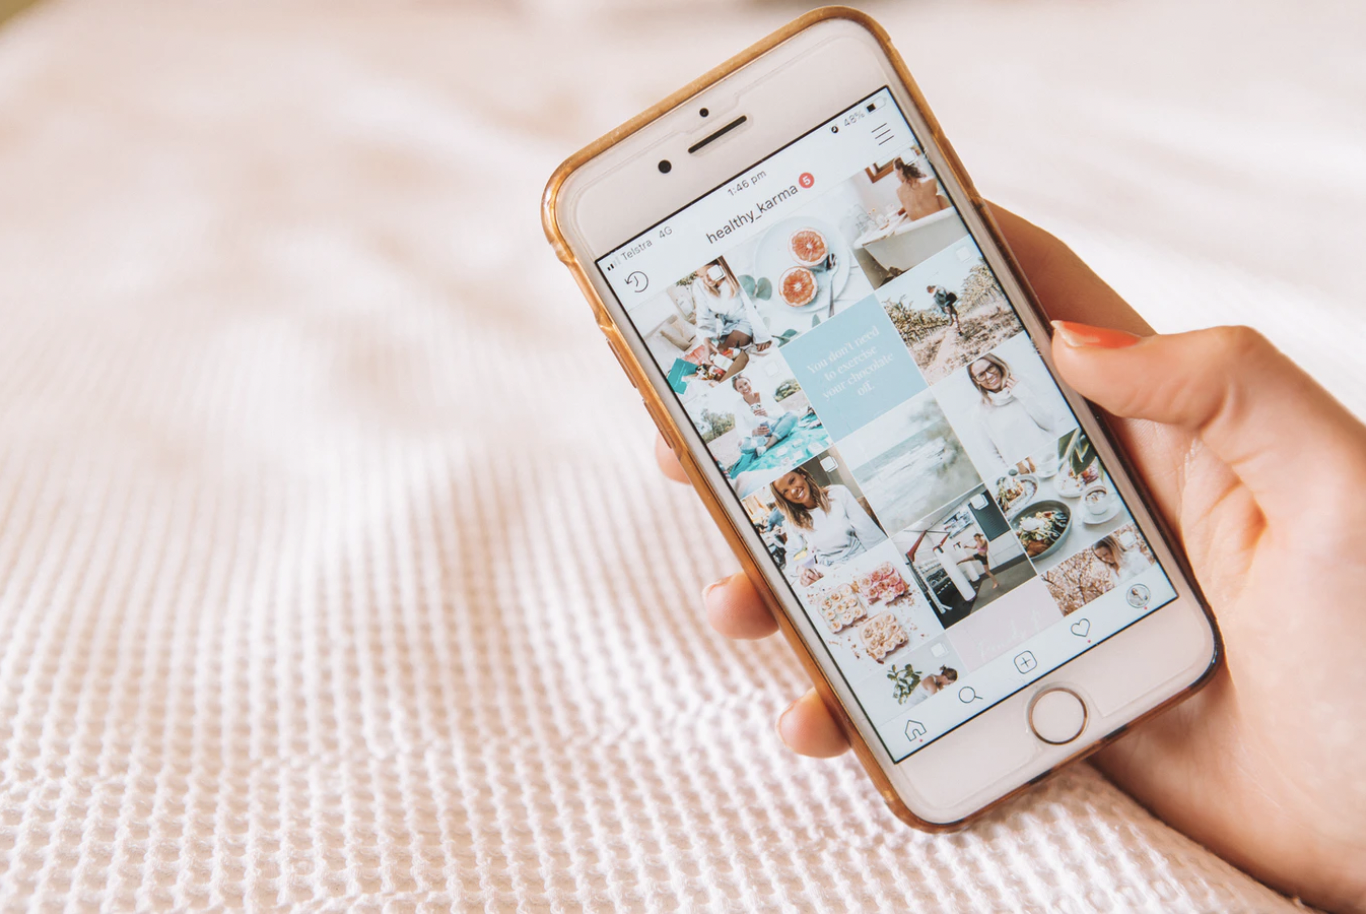 A photo by Maddi Bazzocco of an iPhone displaying an influencer's Instagram feed.